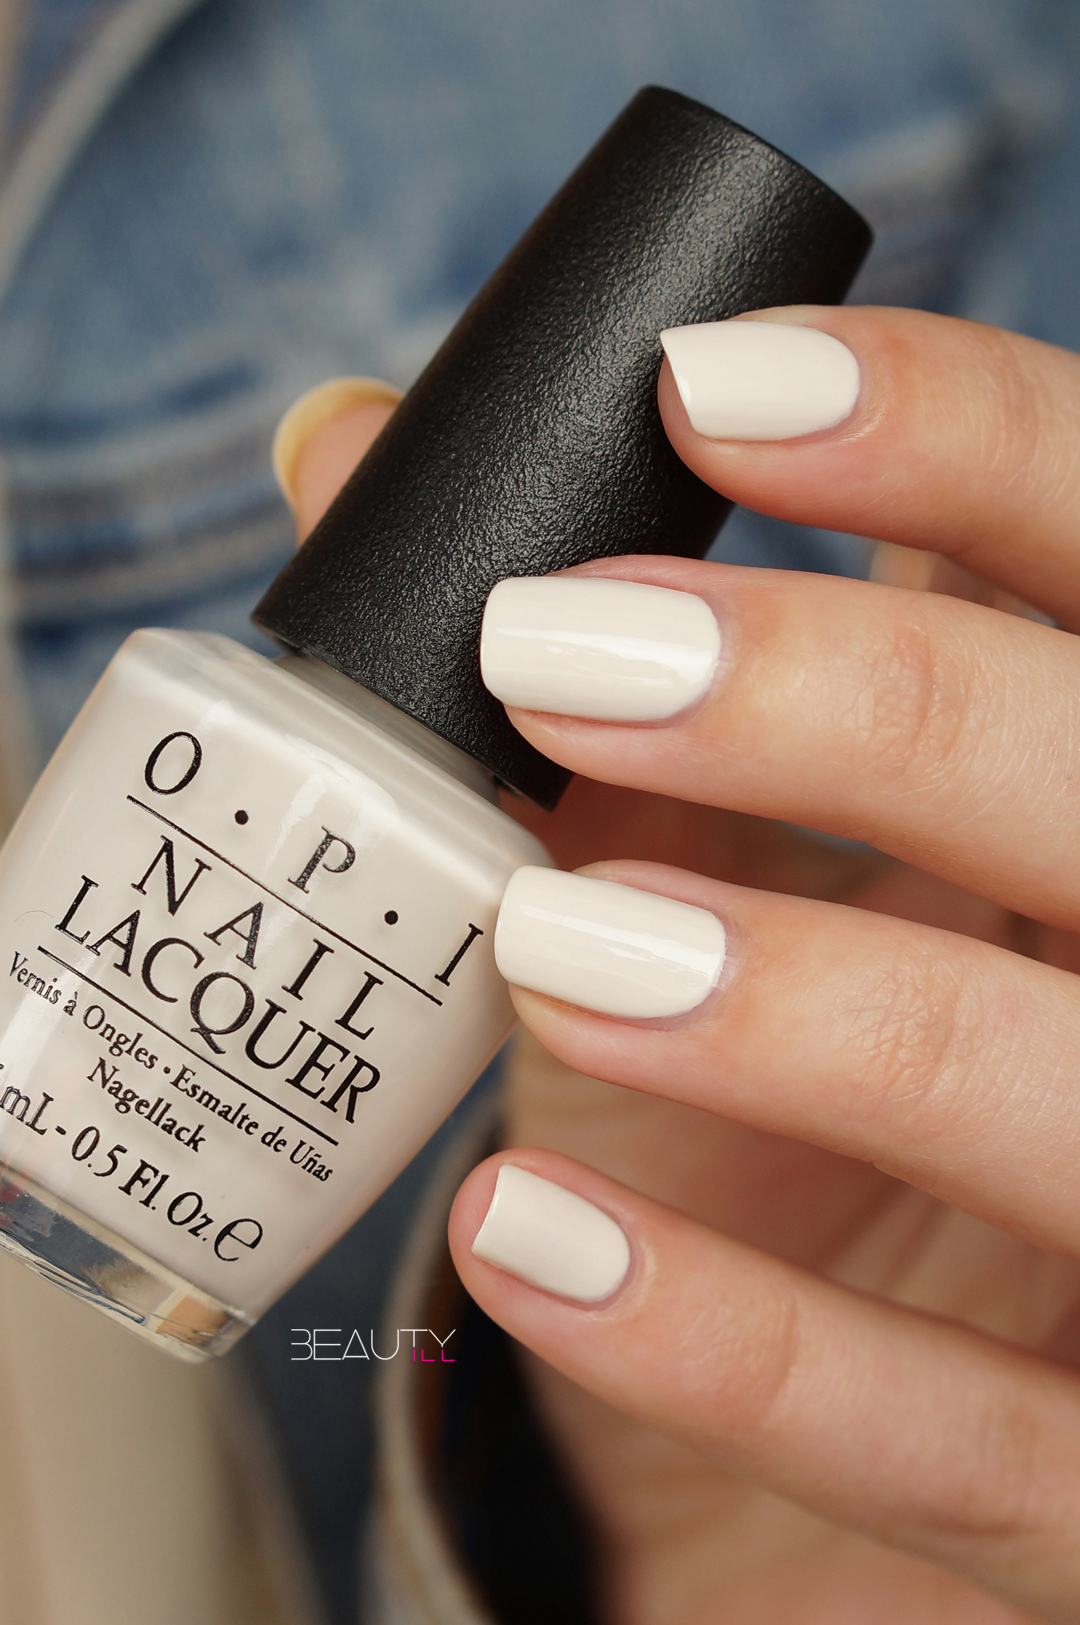 OPI Soft Shades Pastels Swatches Beautyill